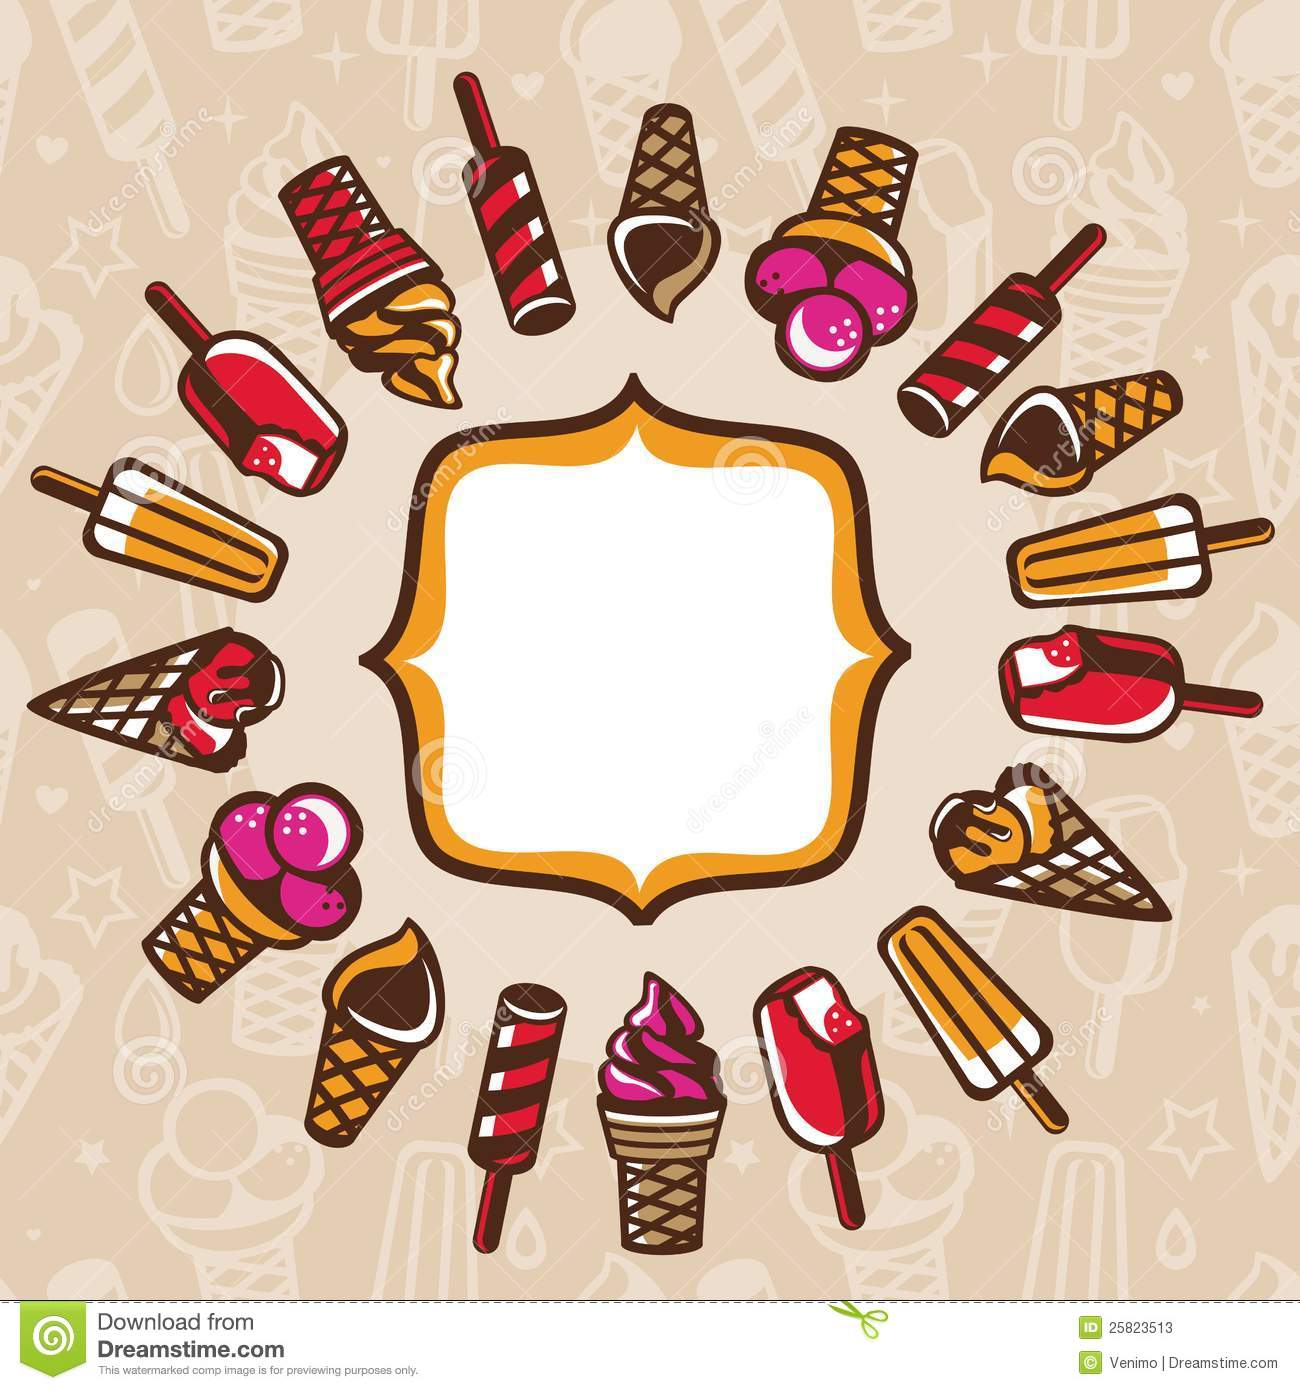 African Bongo Drums 215606 as well Ice Cream Popsicles Vector Material 19588 furthermore Slipping on ice clipart moreover Blackforest Cake besides Sweet With Drop Chocolate Background Set Vector 547154. on chocolate car cartoon